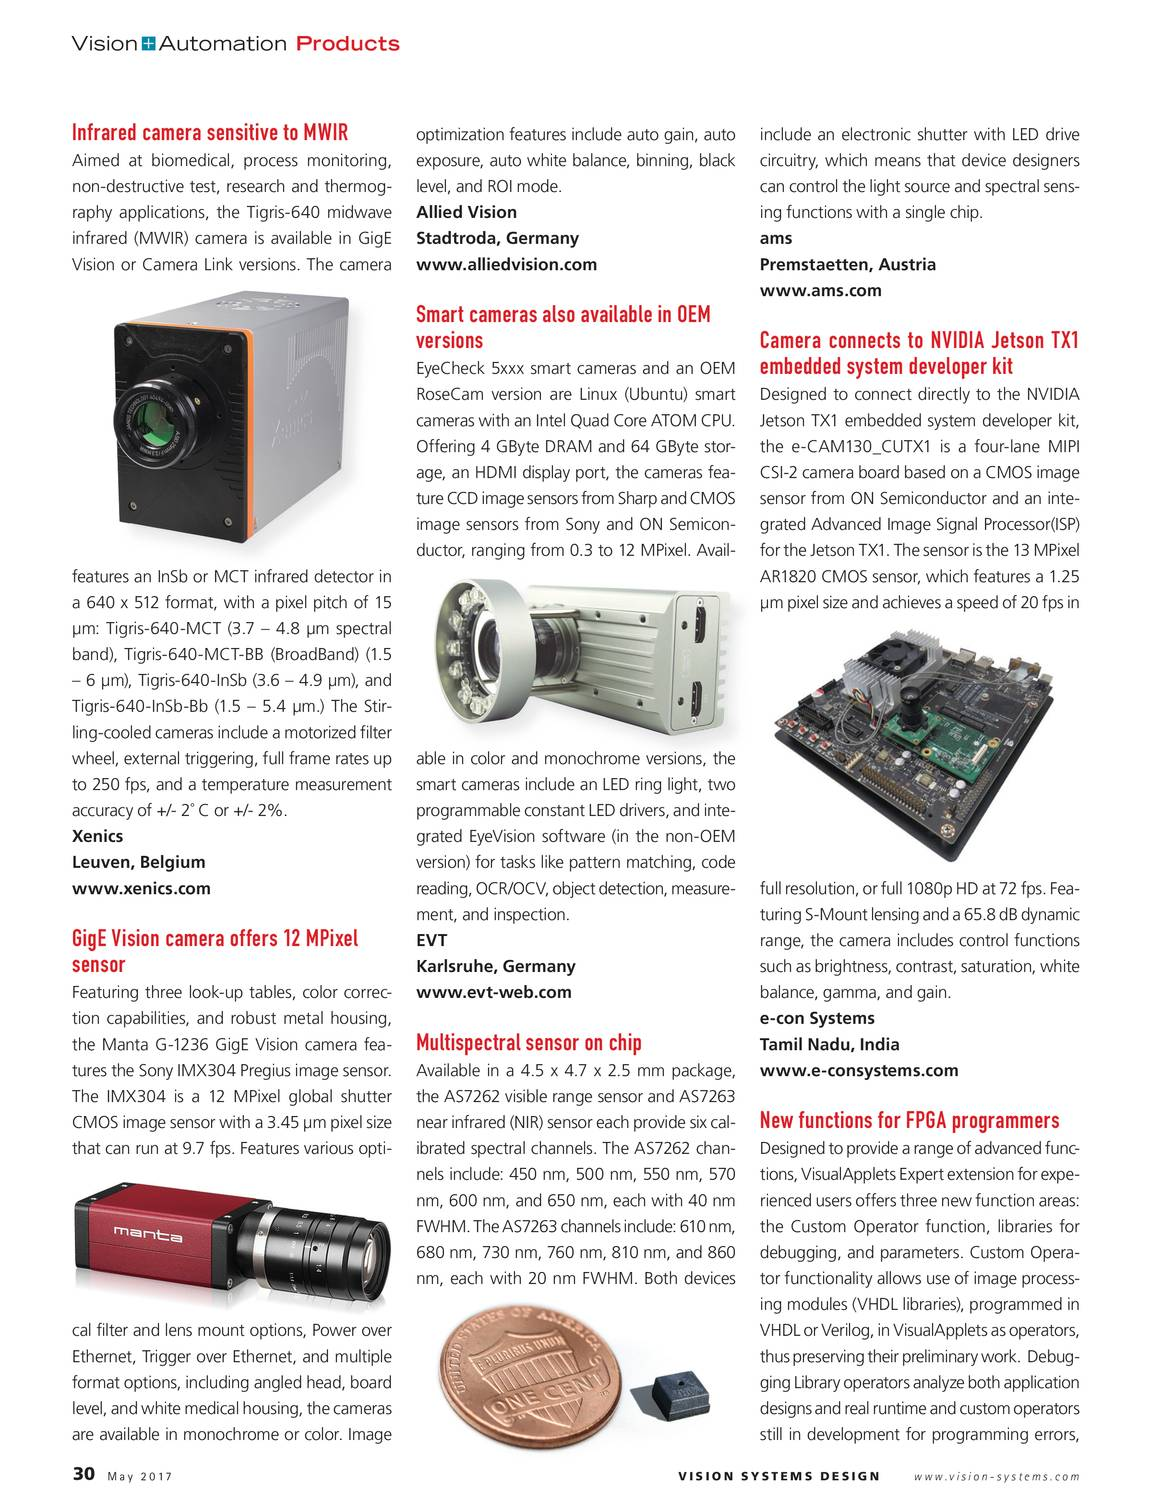 Vision Systems - May 2017 - page 30